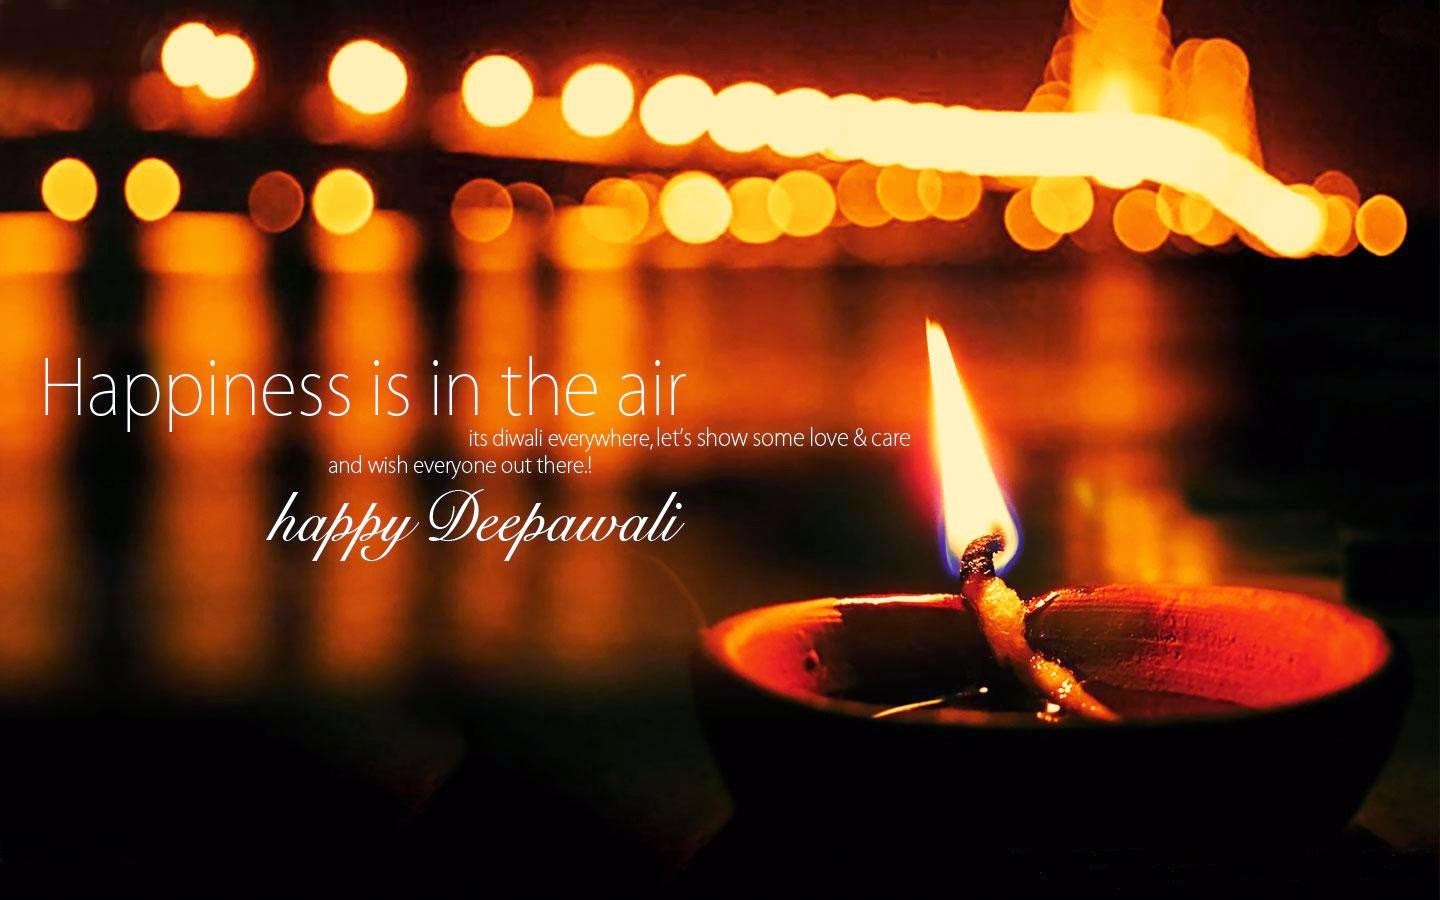 awesome greetings cards on diwali special images hd wallpaper